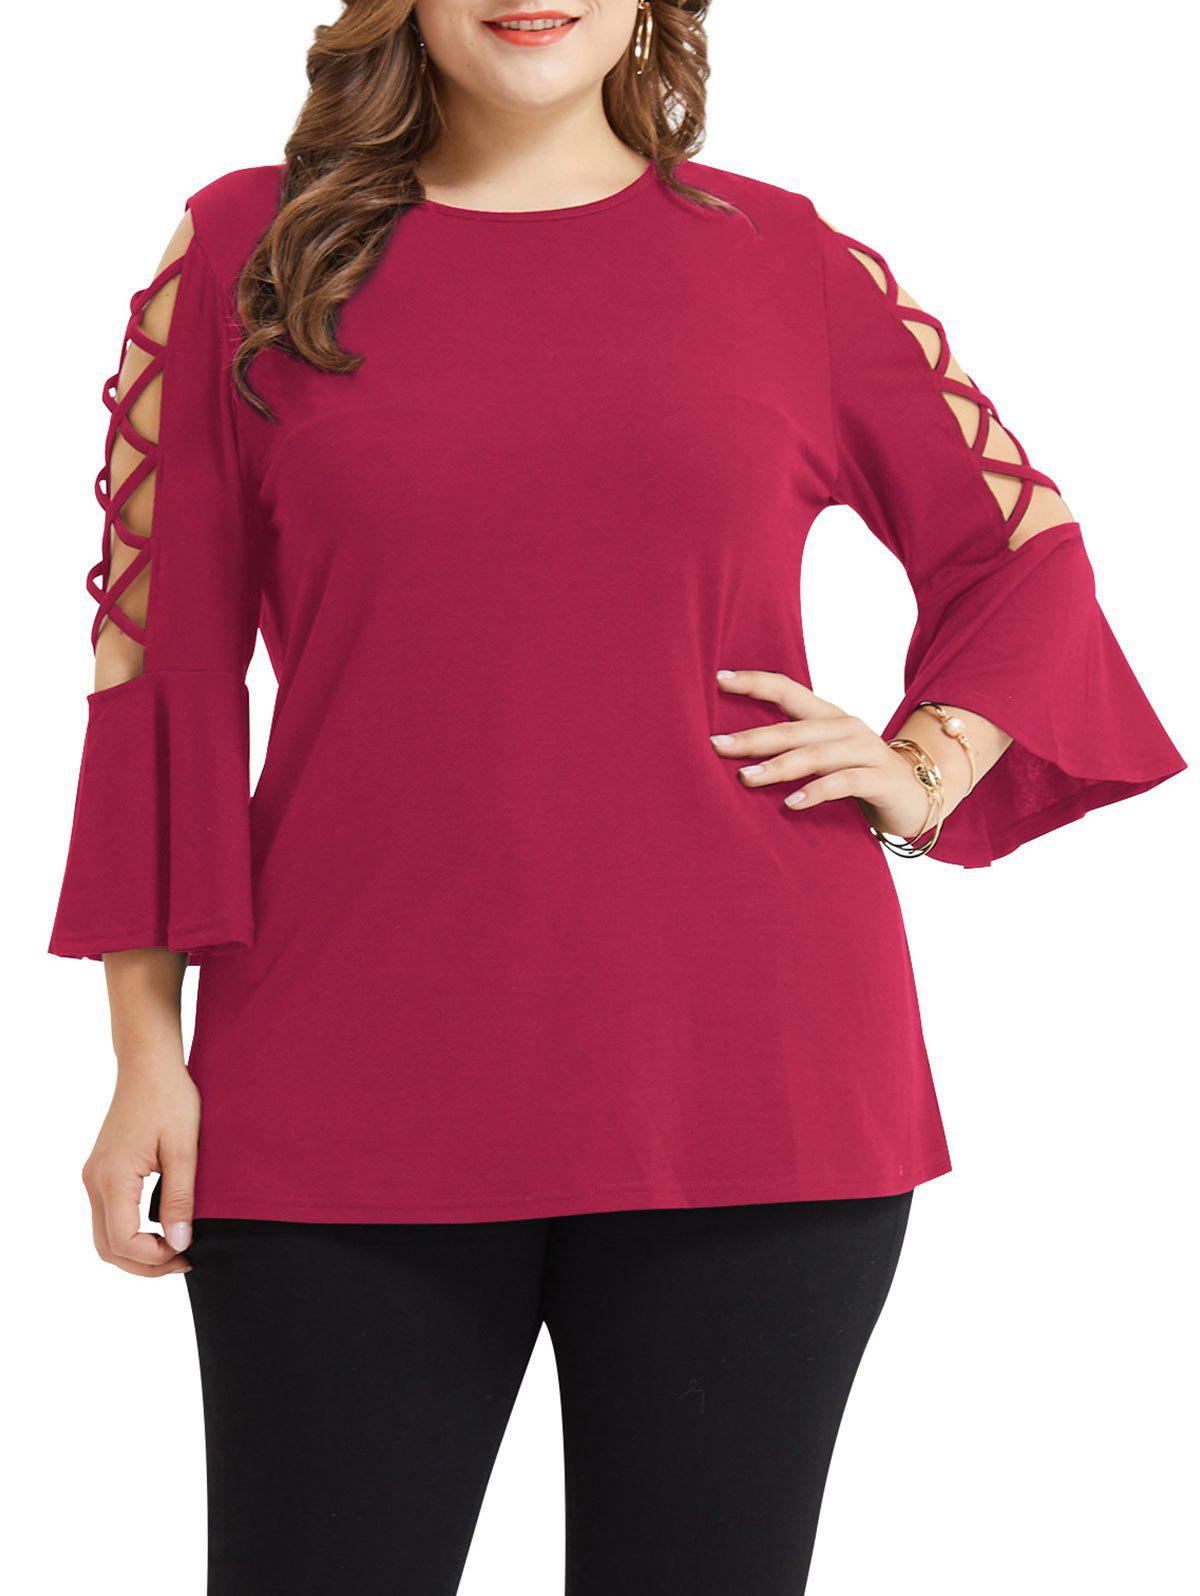 Affordable Plus Size Criss Cross Flare Sleeve T-shirt